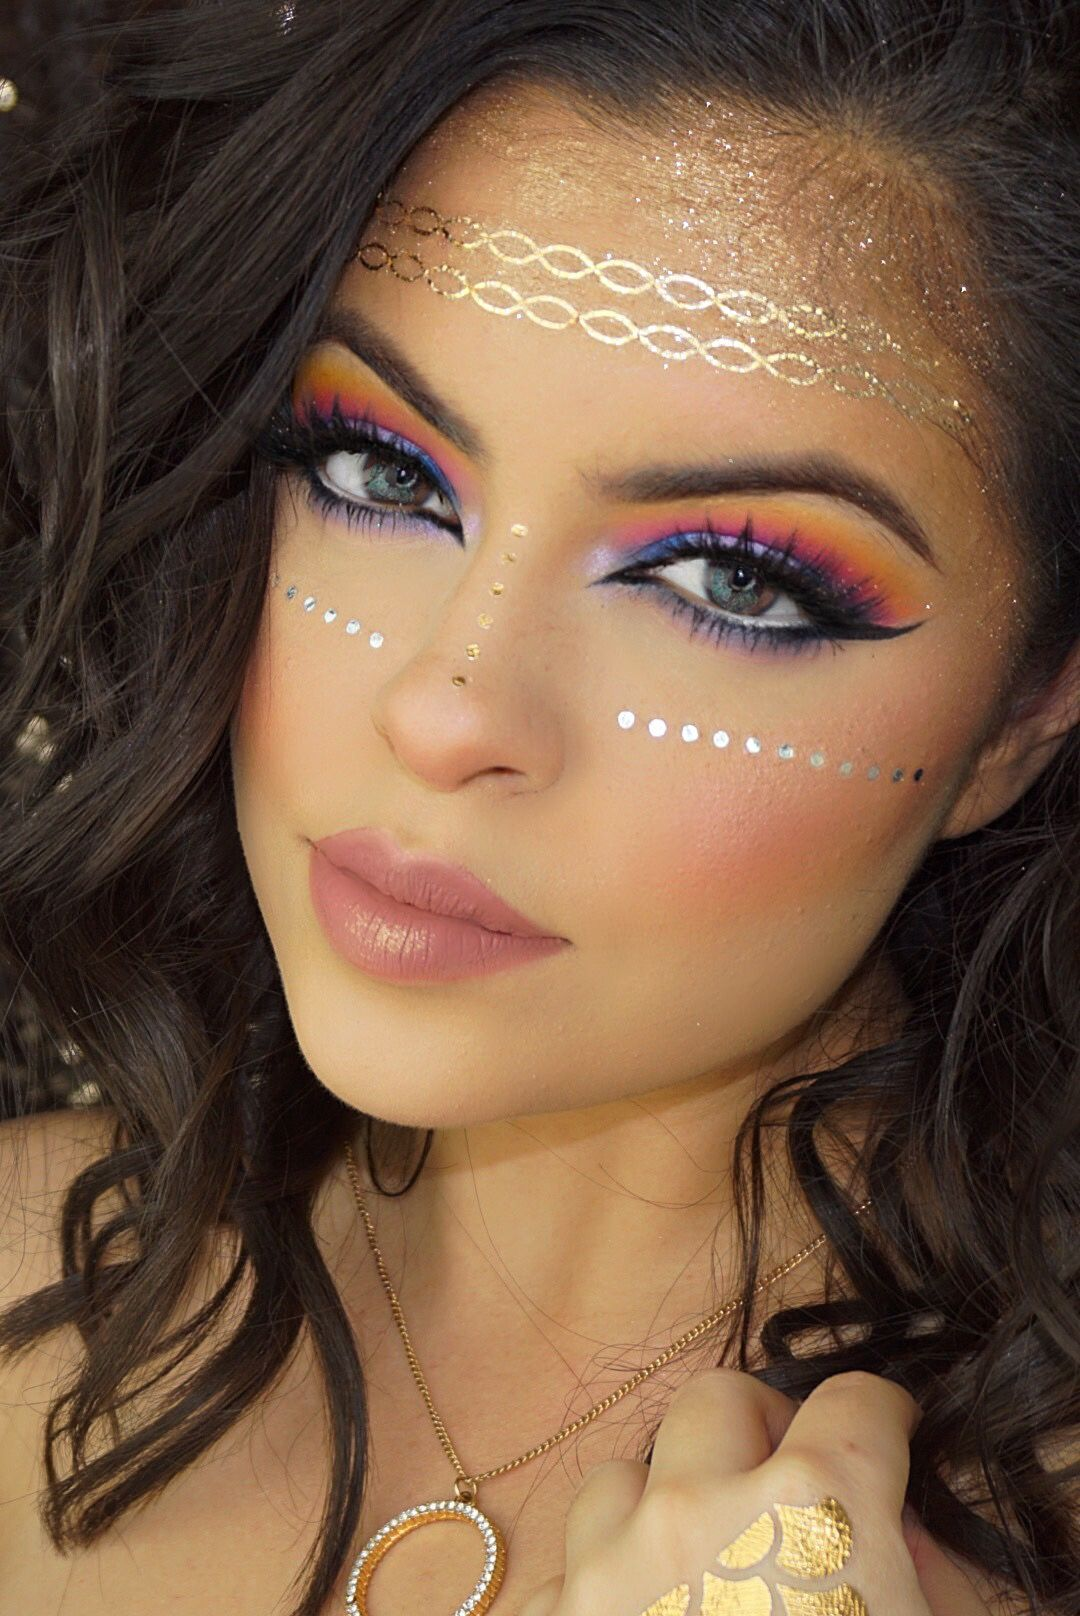 Check out our favorite Coachella Glam inspired makeup look